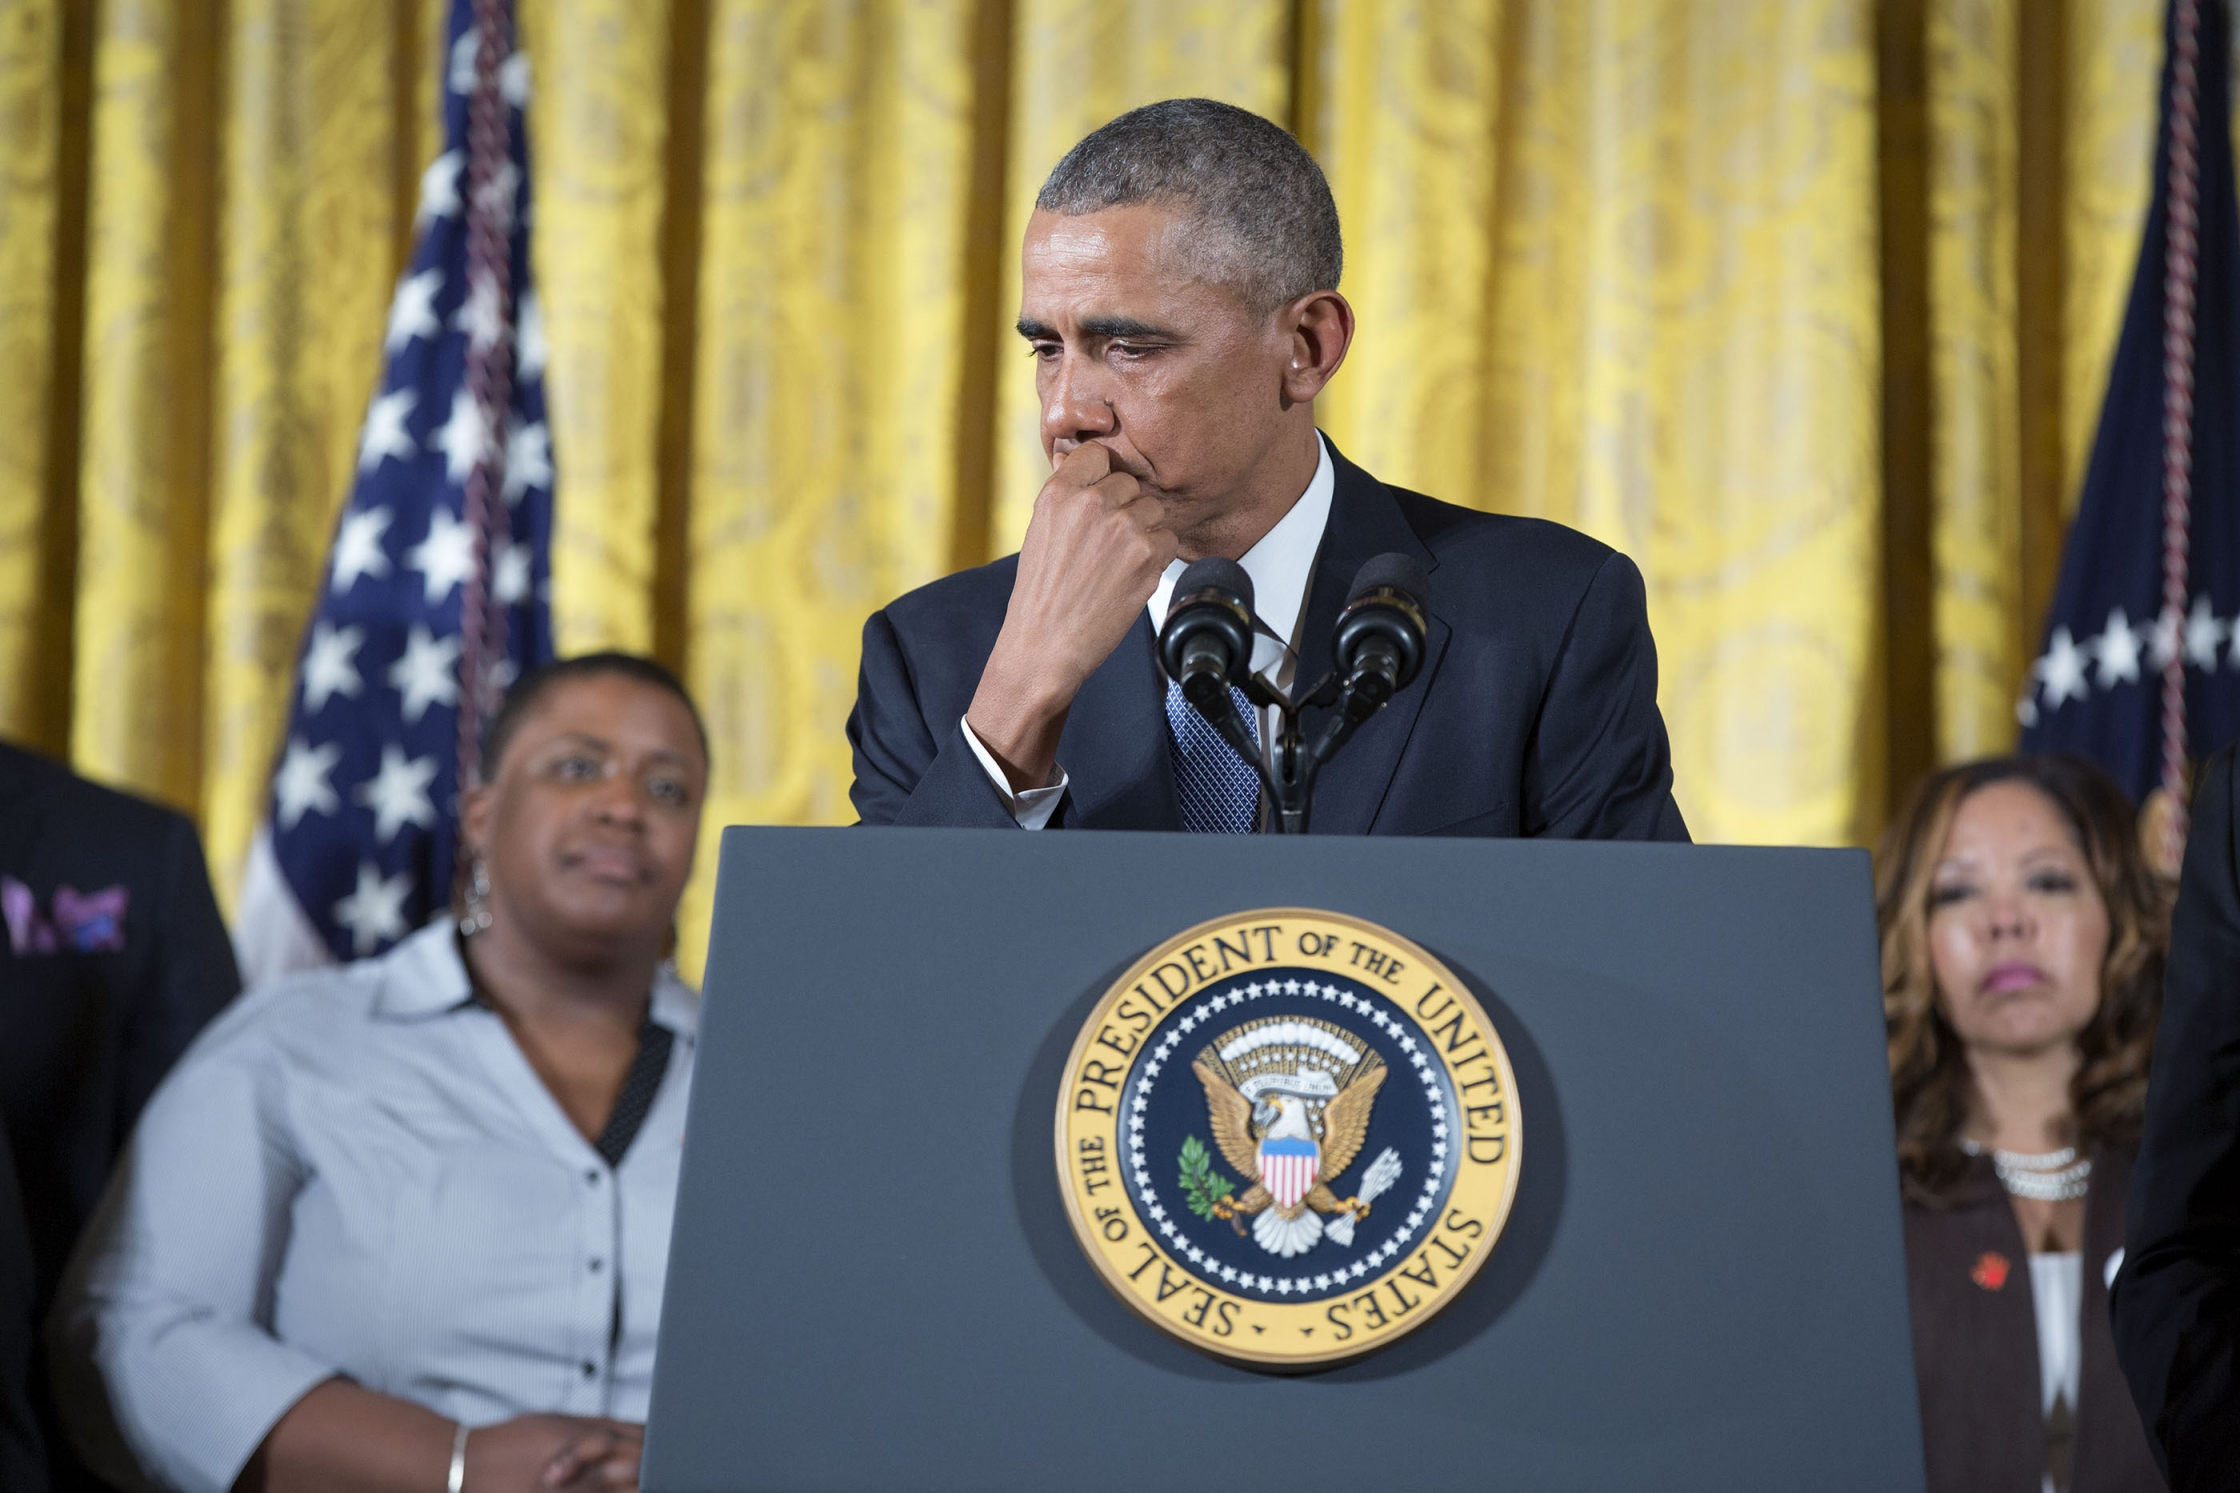 President Obama tears up at his press conference